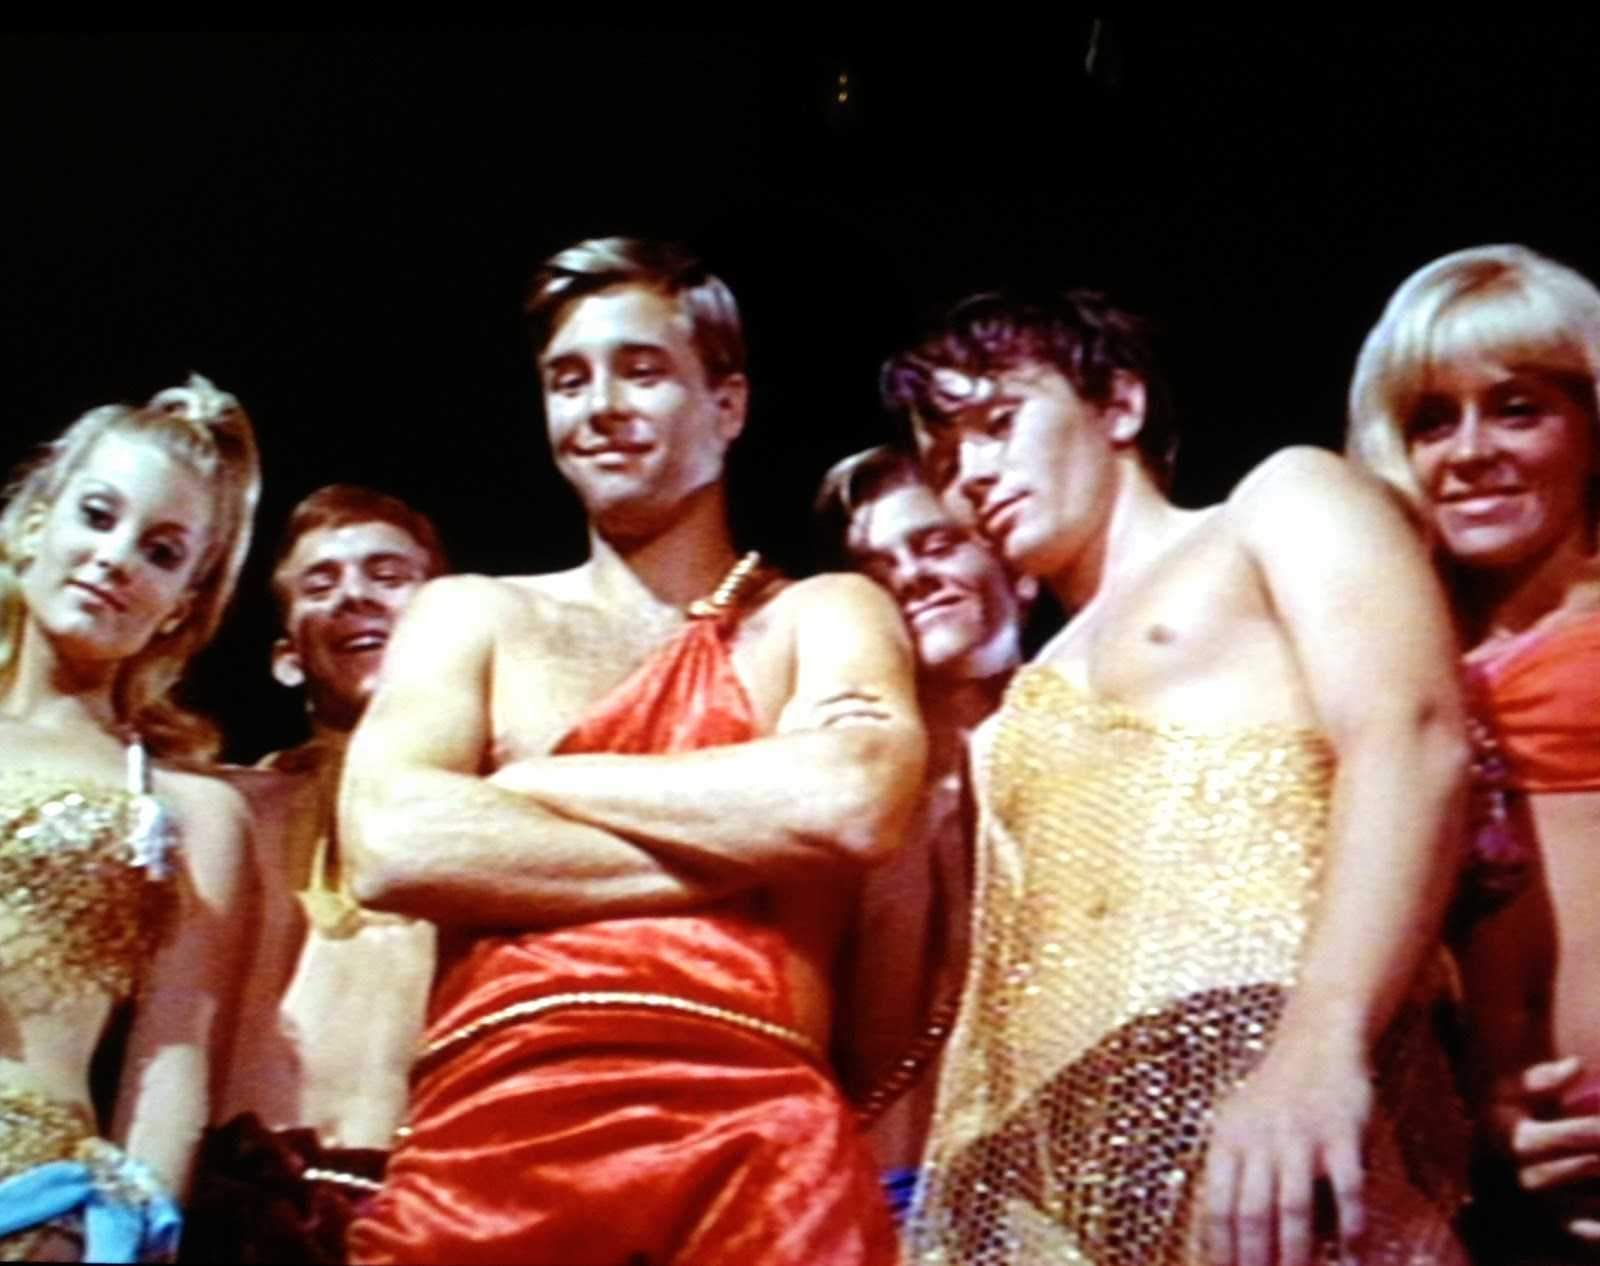 Giant teenagers - (l to r) Tisha Sterling, Beau Bridges, Bob Random and Joy Harmon in Village of the Giants (1965)